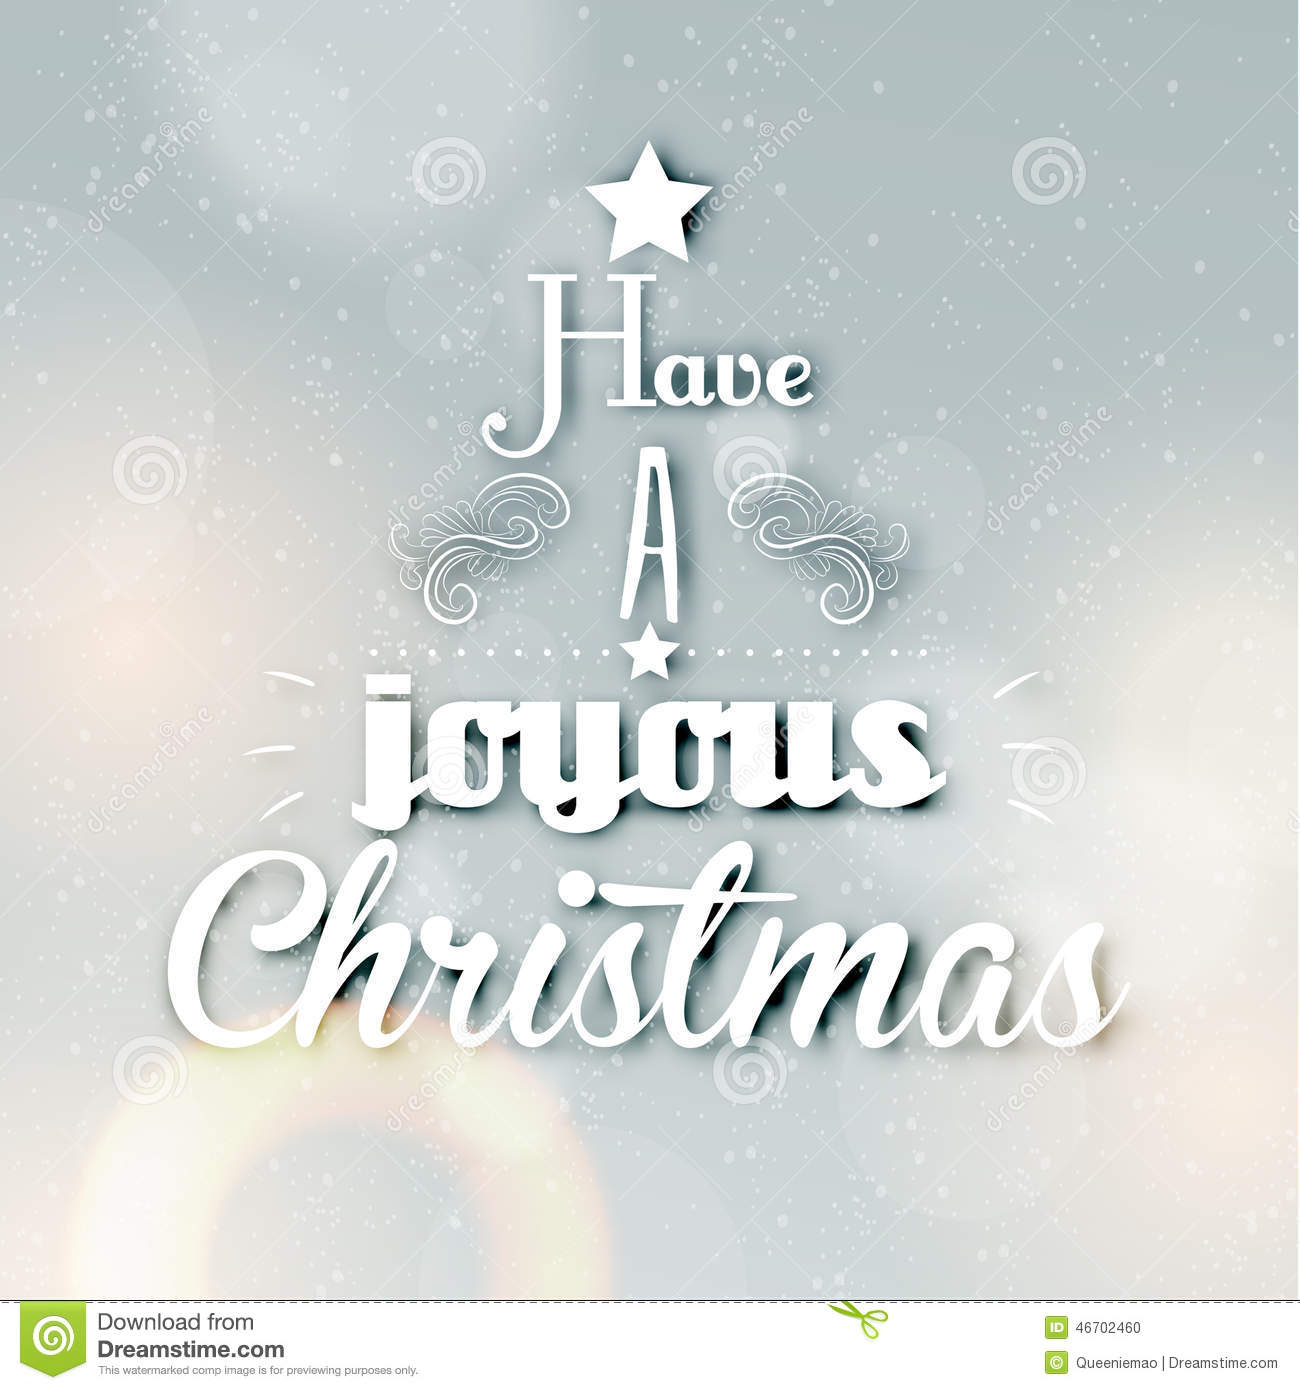 Merry christmas season greetings quote stock illustration merry christmas season greetings quote celebrate holiday m4hsunfo